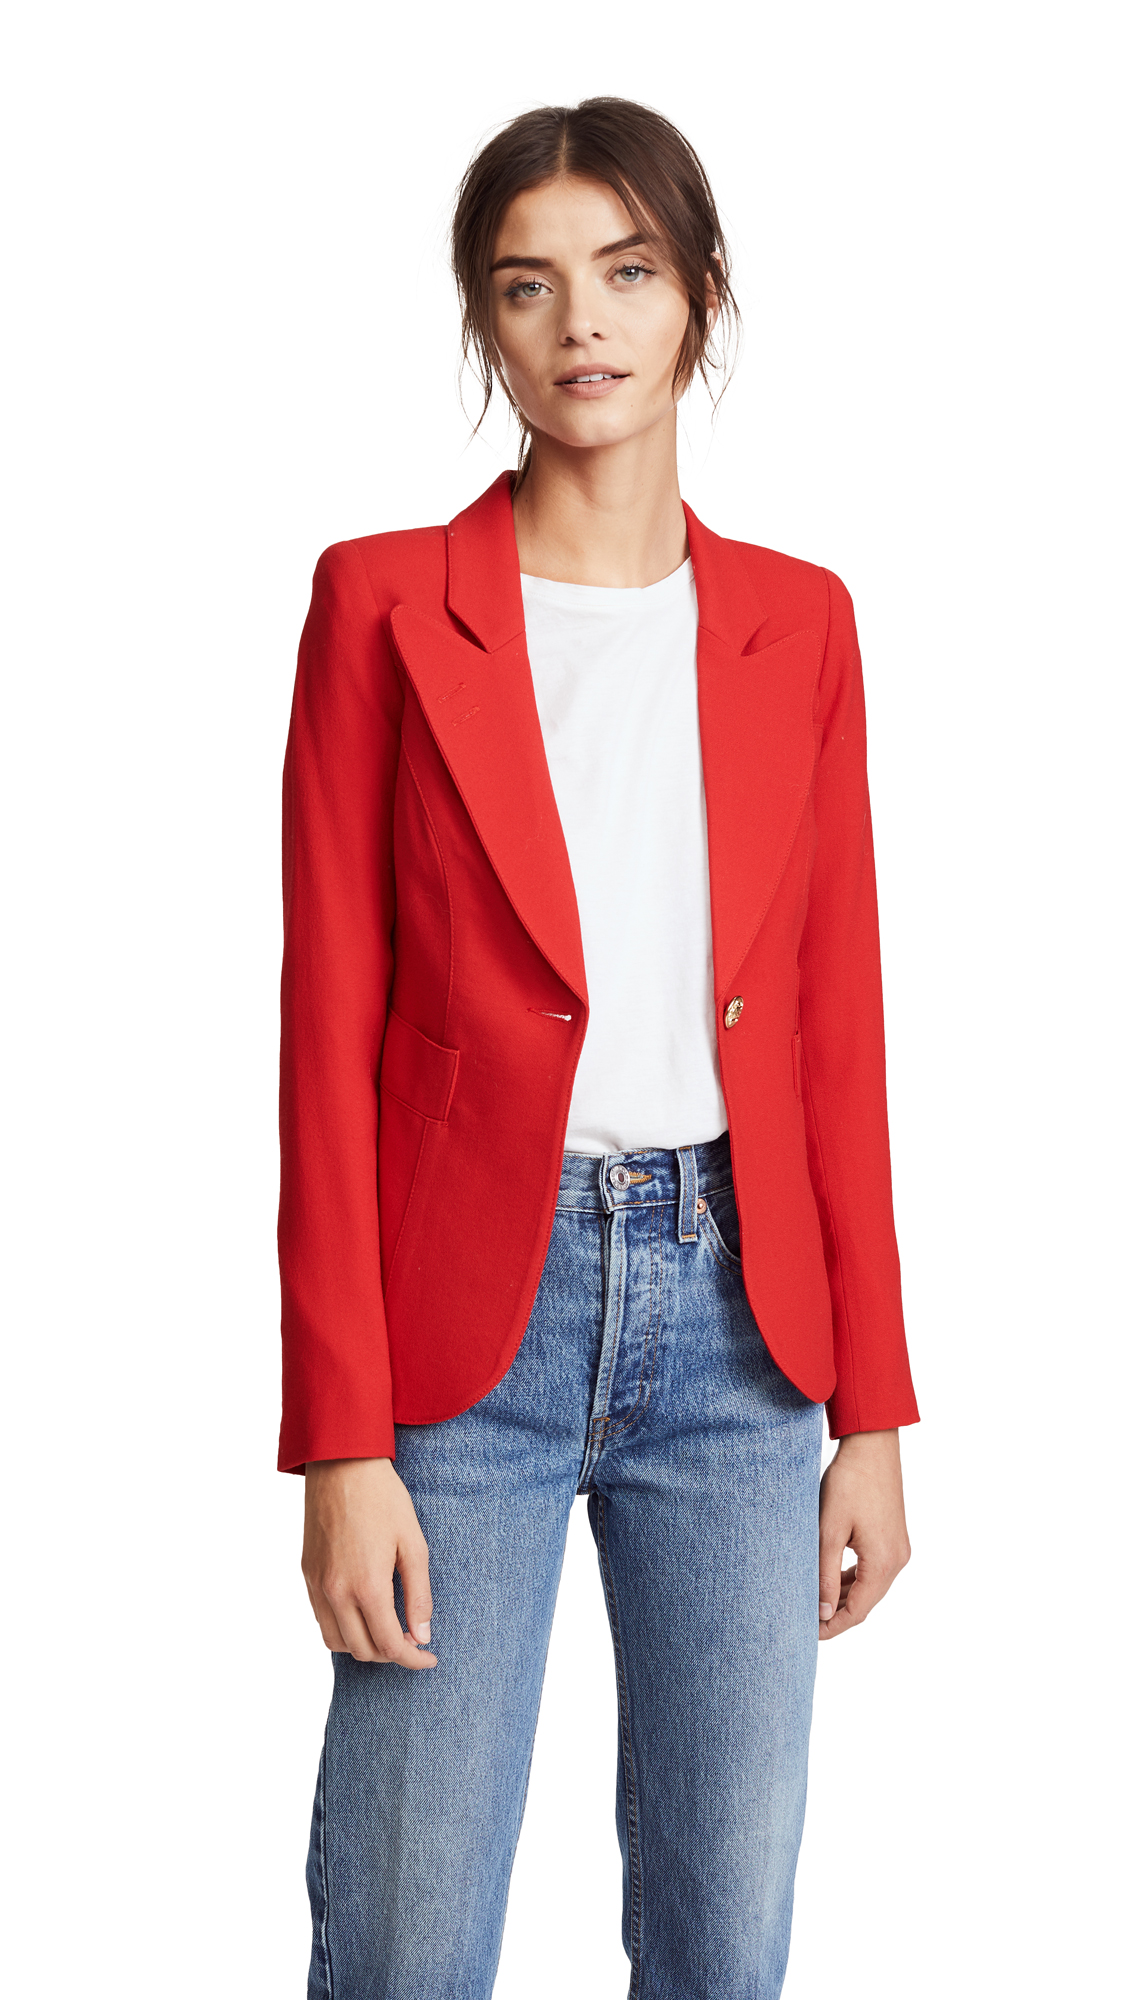 SMYTHE Duchess Blazer - Red